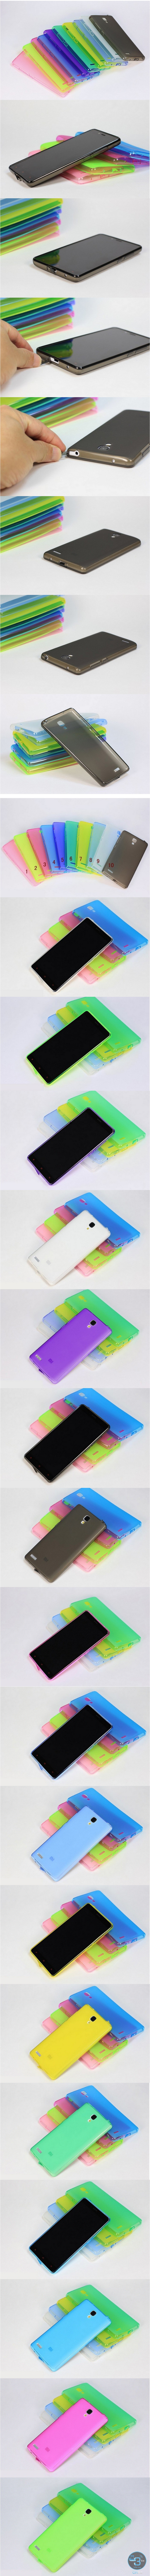 xiaomi redmi note silicon case(2)